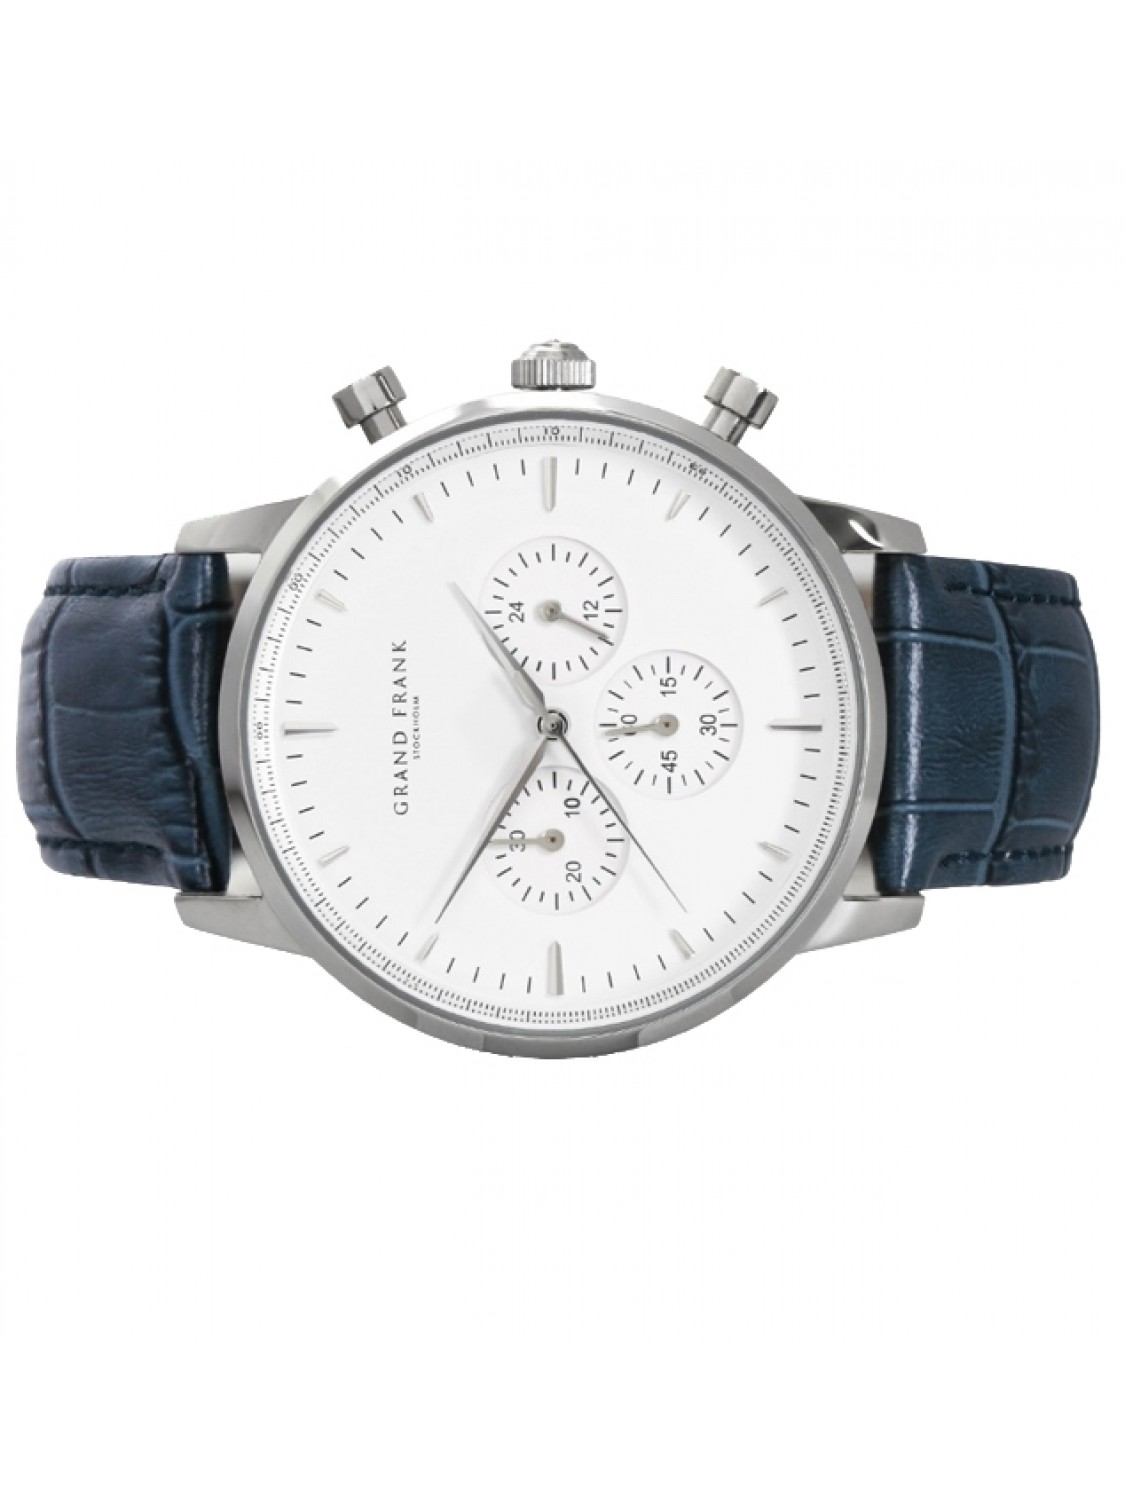 Grand Frank Montpellier White Chronograph-313